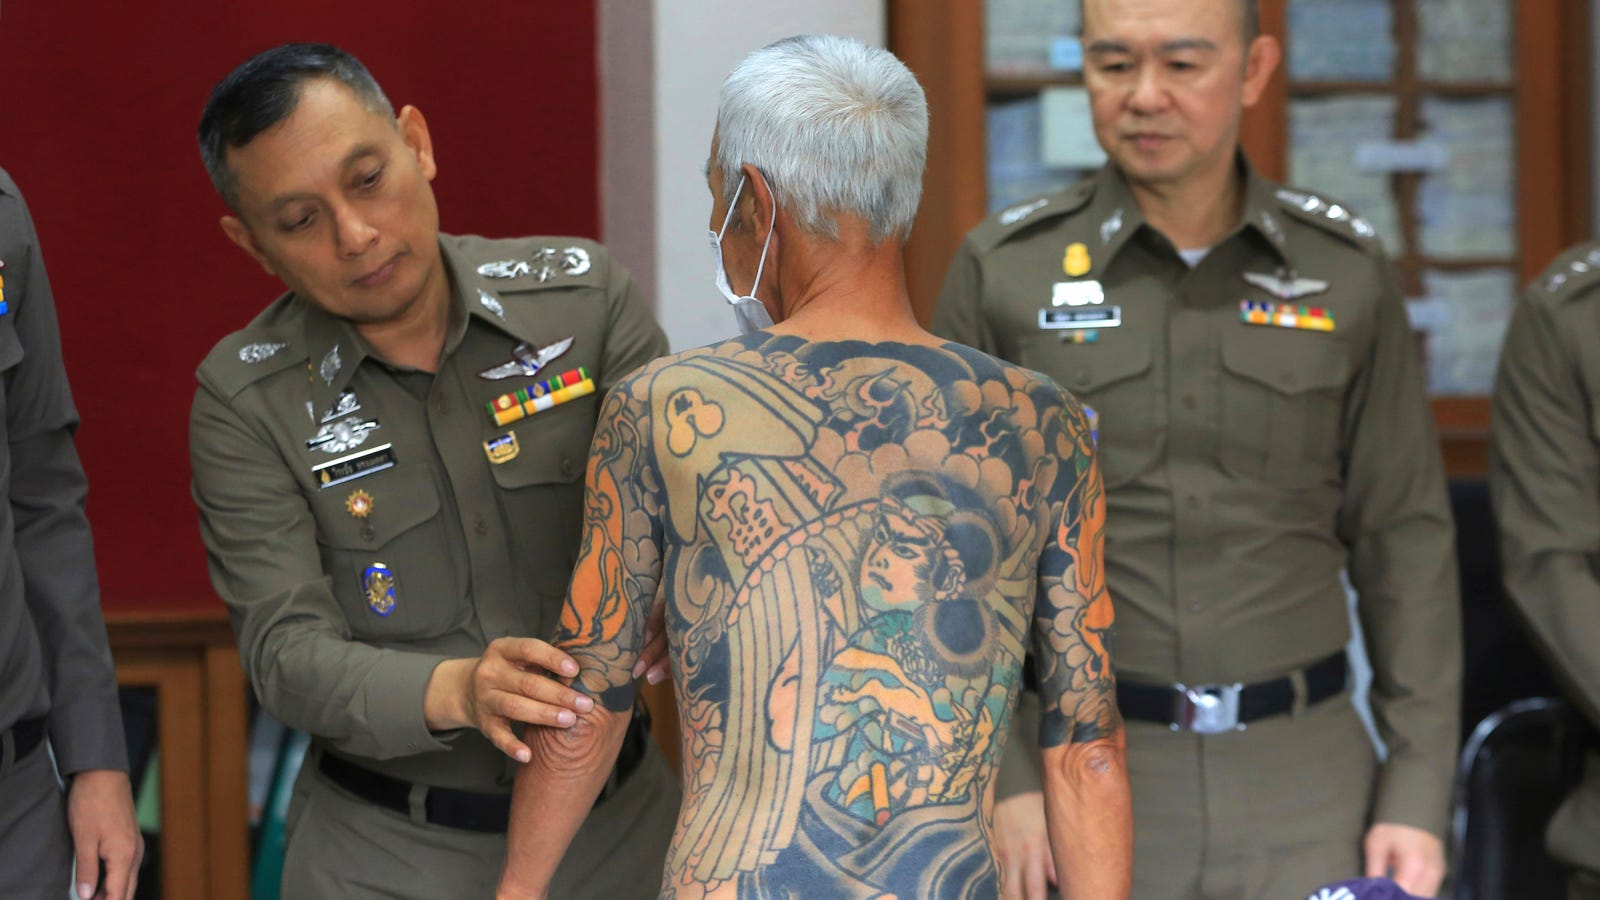 Fugitive Yazuka Boss Arrested After Facebook Photos of His Tattoos Go Viral